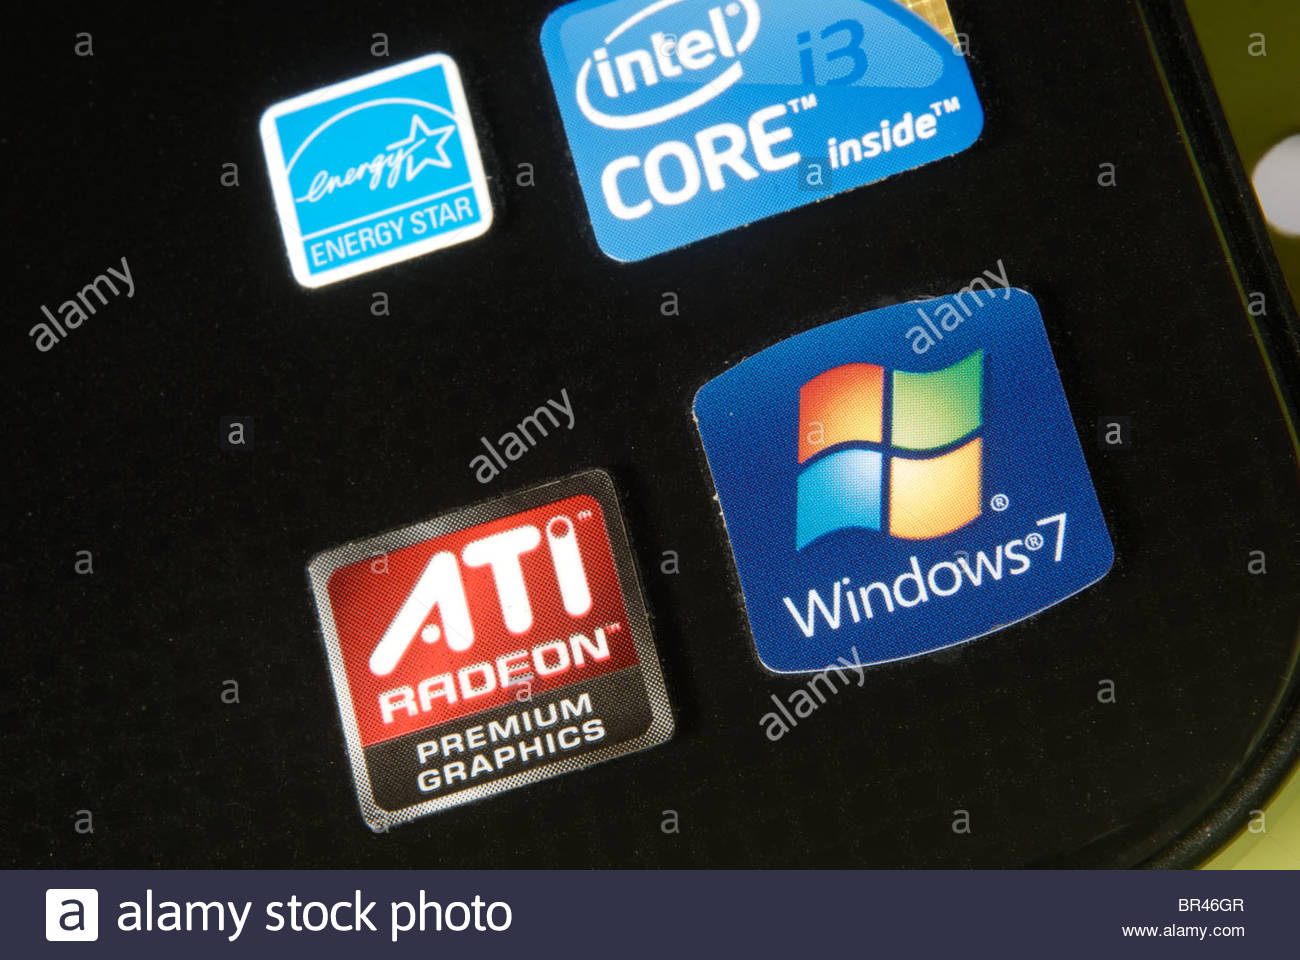 Stickers on a Sony Vaio laptop computer showing software ATI Radeon premium graphics and Windows 7. - Stock Image